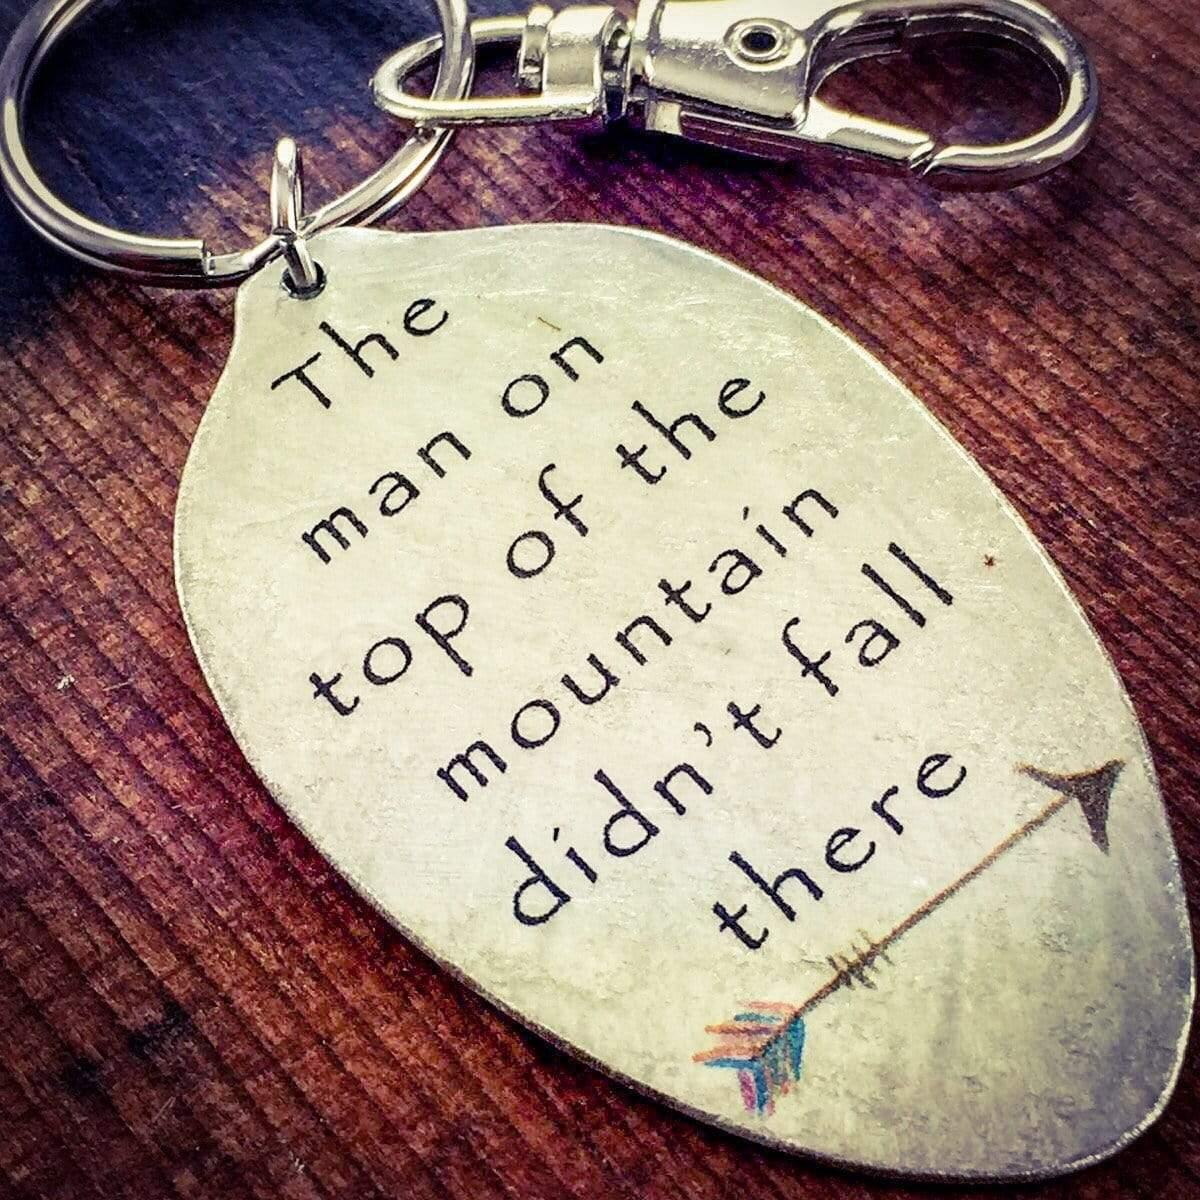 Inspiring Gift, The man on top of the mountain didn't fall there Keychain, Motivational Jewelry, Kyleemae Designs Spoon Jewelry